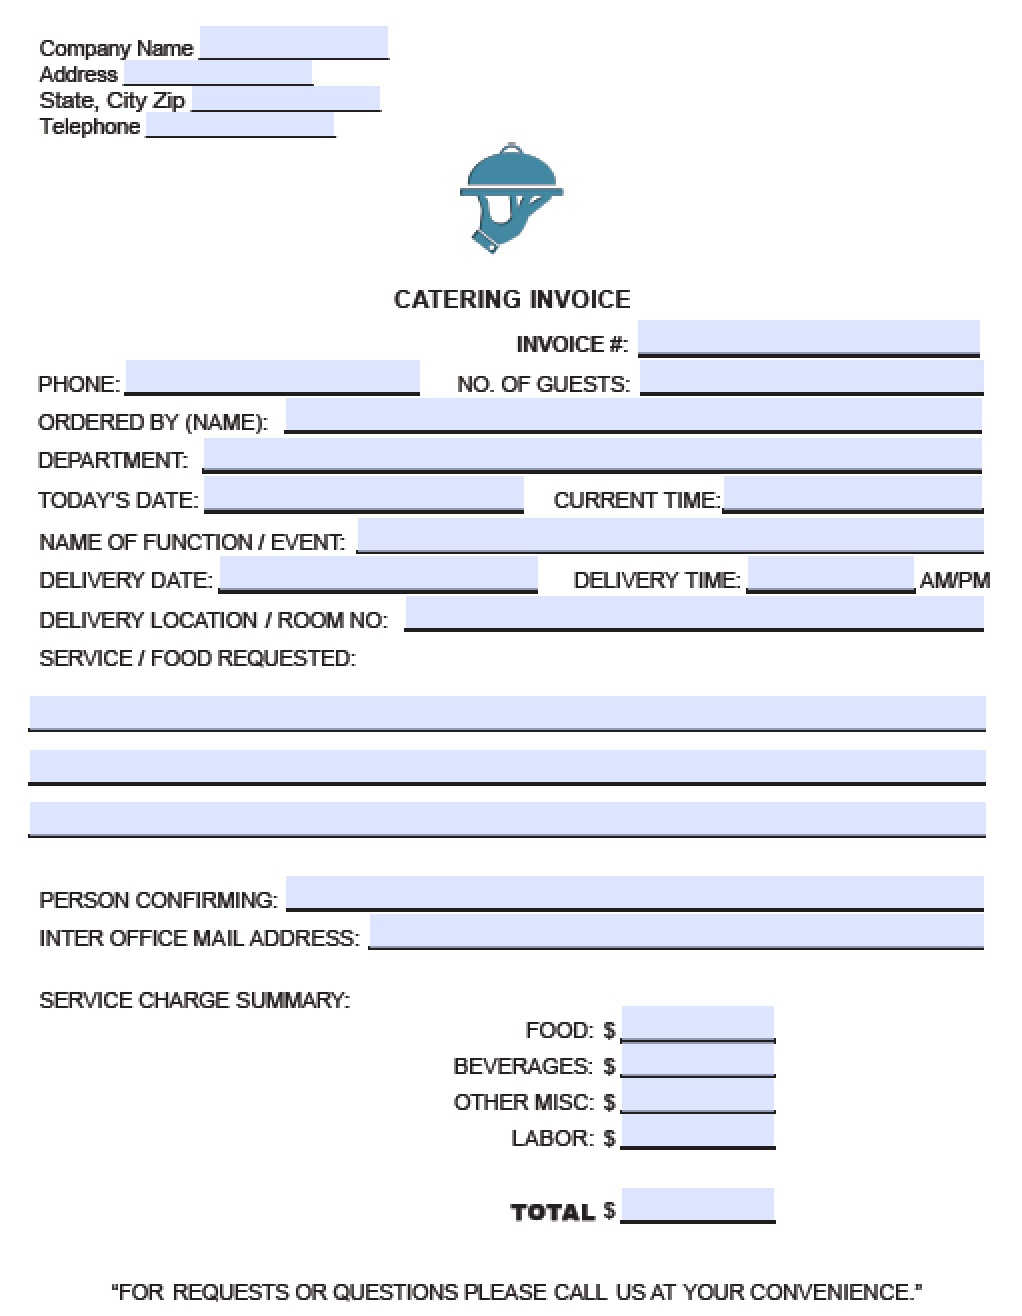 Free Catering Service Invoice Template | Excel | Pdf | Word (.doc) To Catering Service Invoice